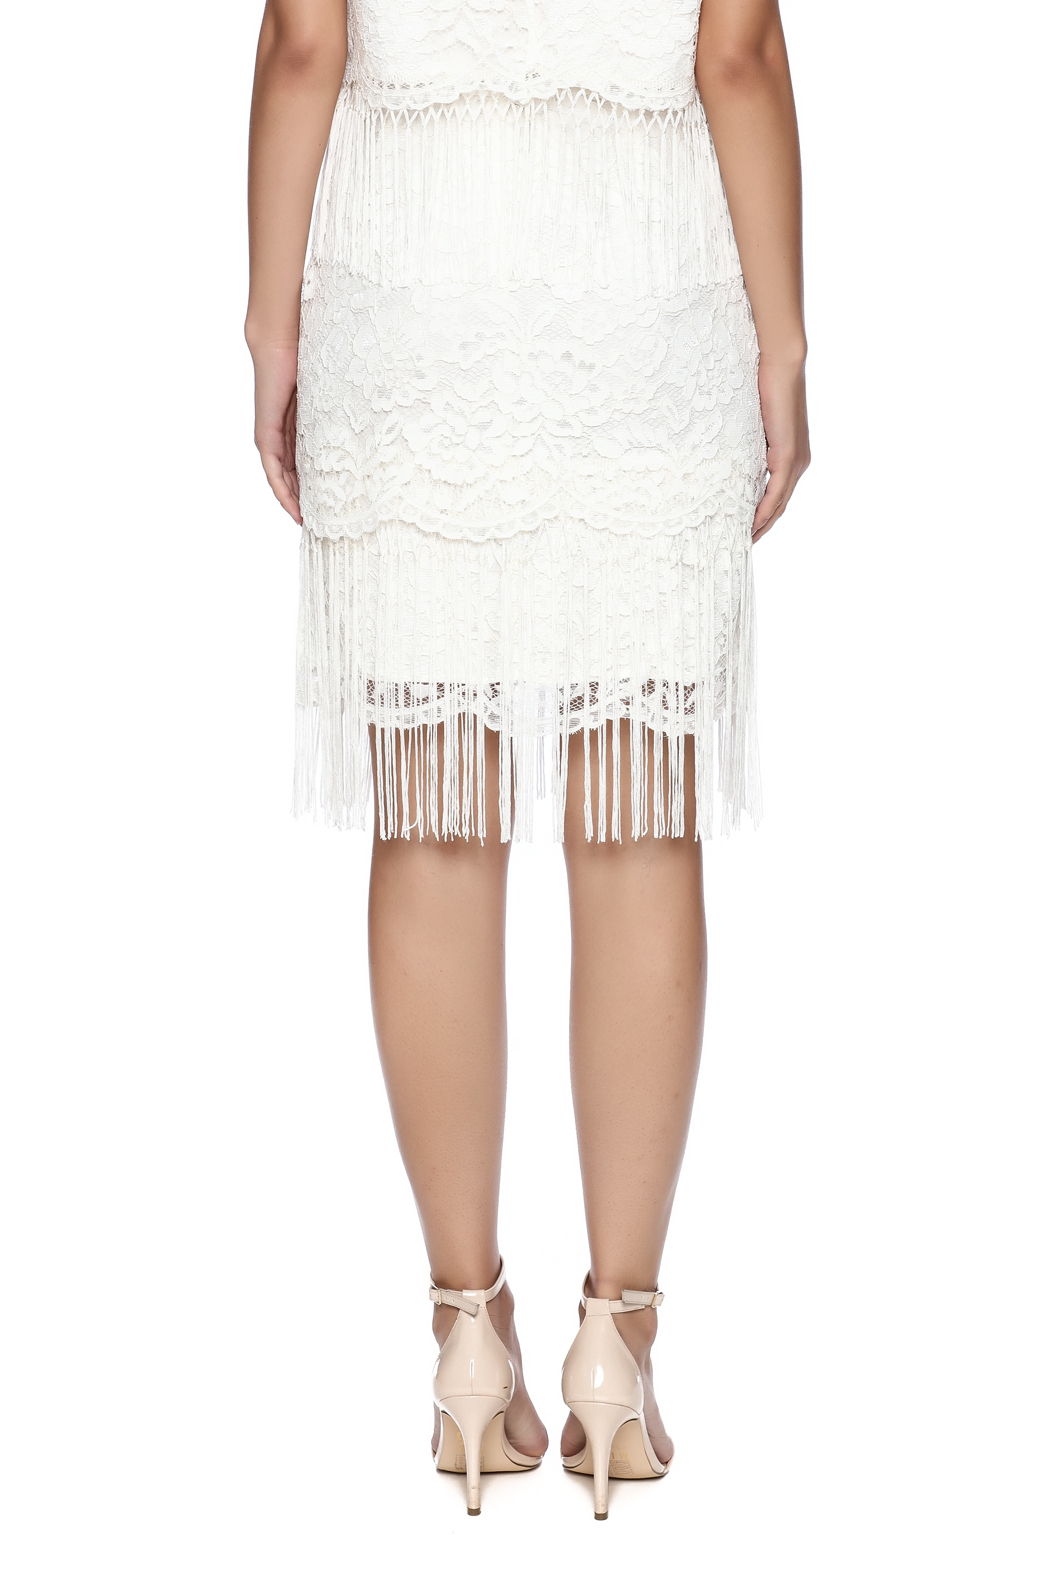 Ark & Co. Fringe Lace Skirt - Back Cropped Image